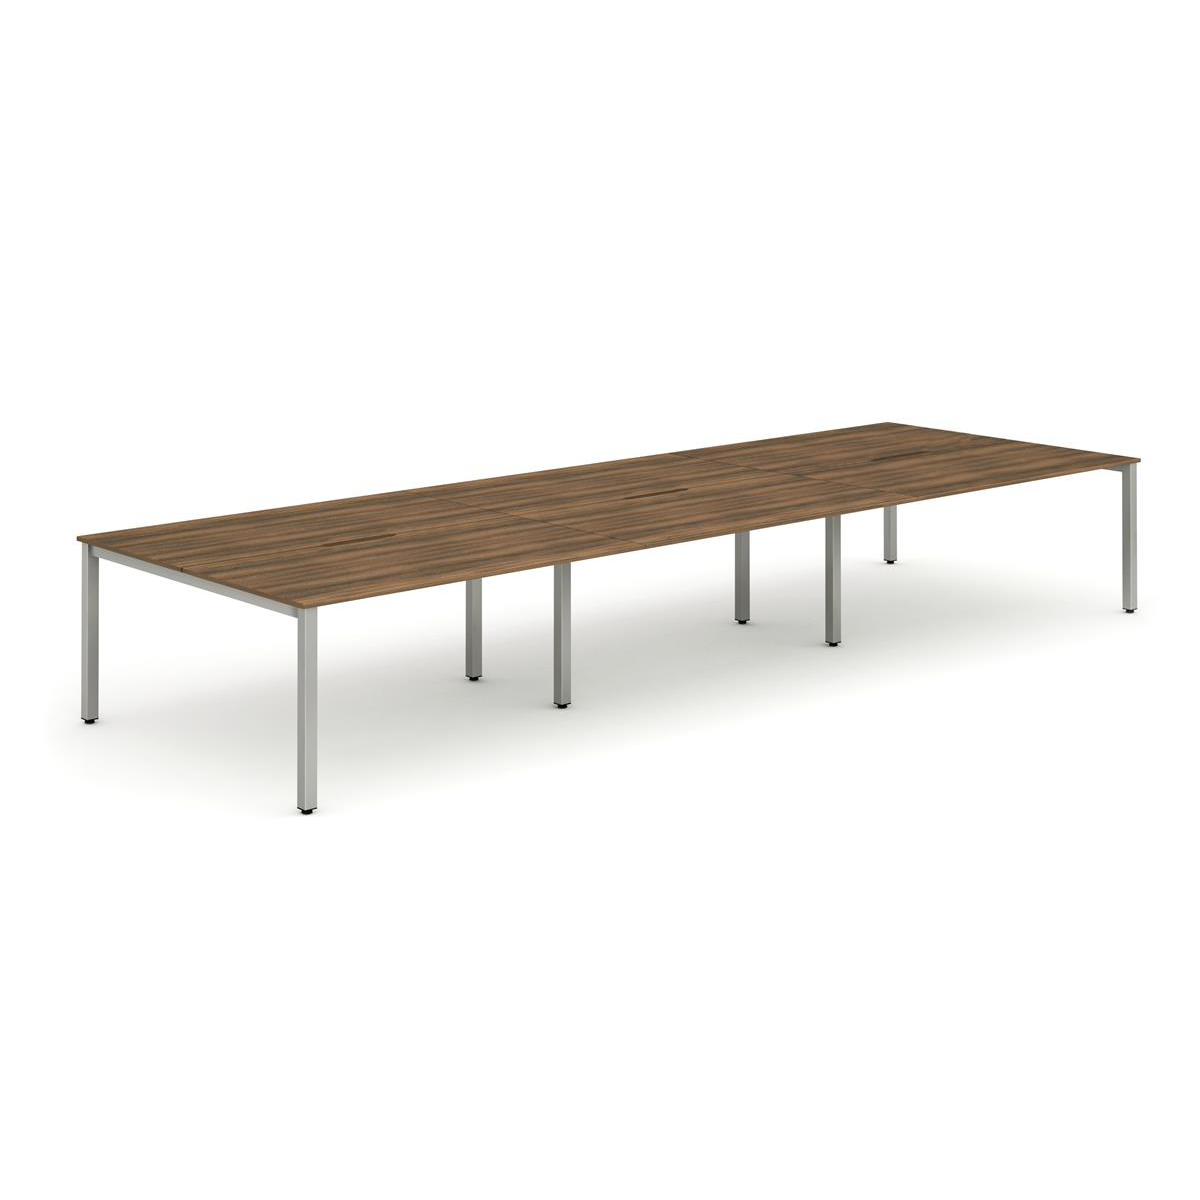 Trexus Bench Desk 6 Person Back to Back Configuration Silver Leg 2800x1600mm Walnut Ref BE294